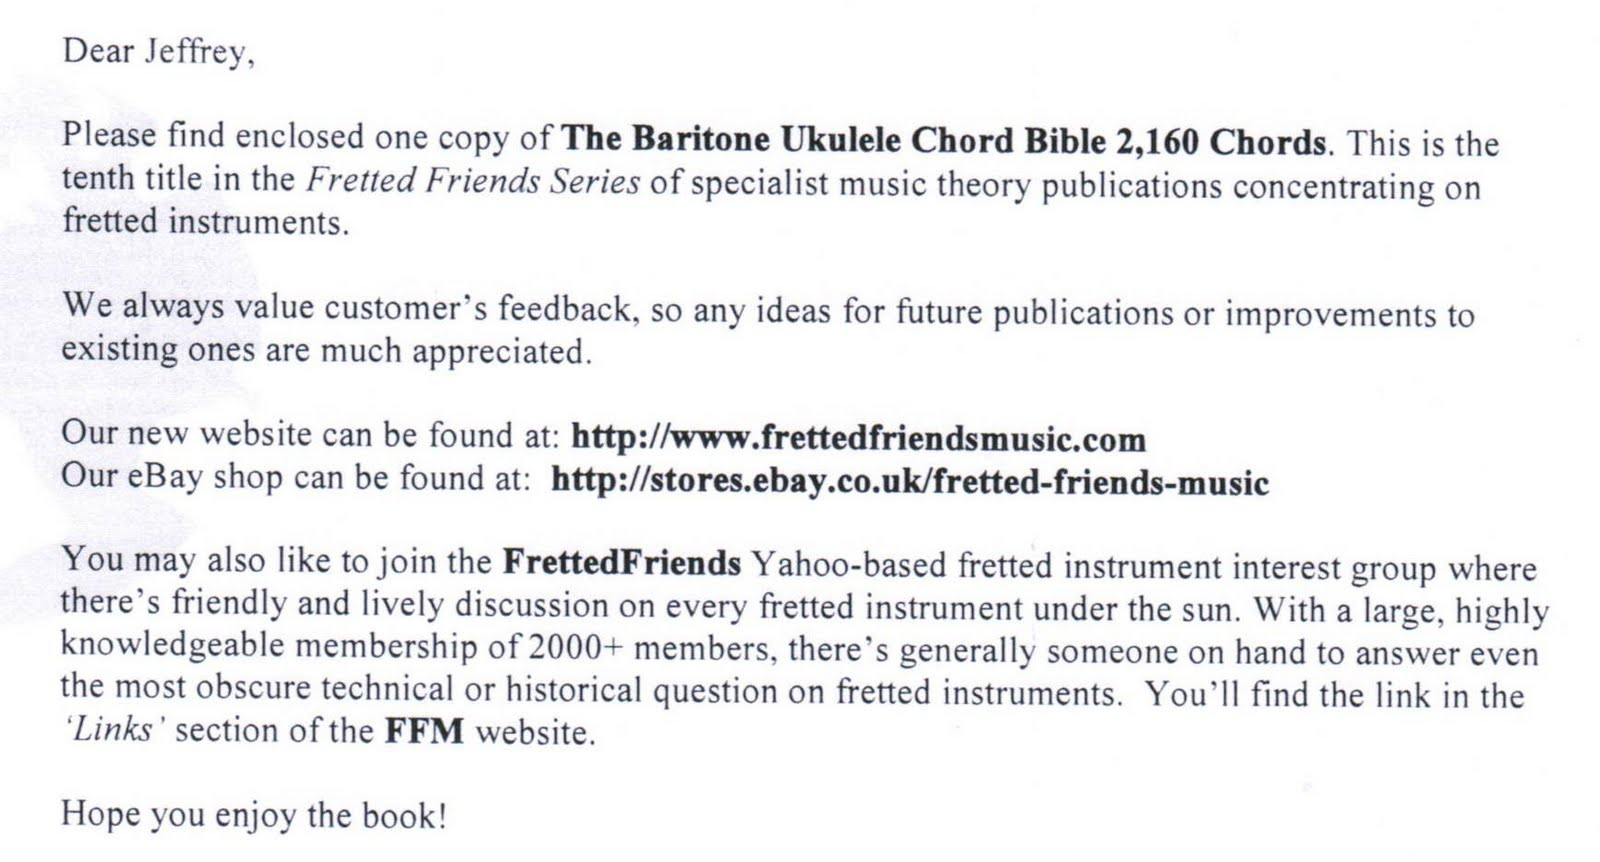 Humble baritonics october 2010 fretted friends the baritone ukulele chord bible hexwebz Images